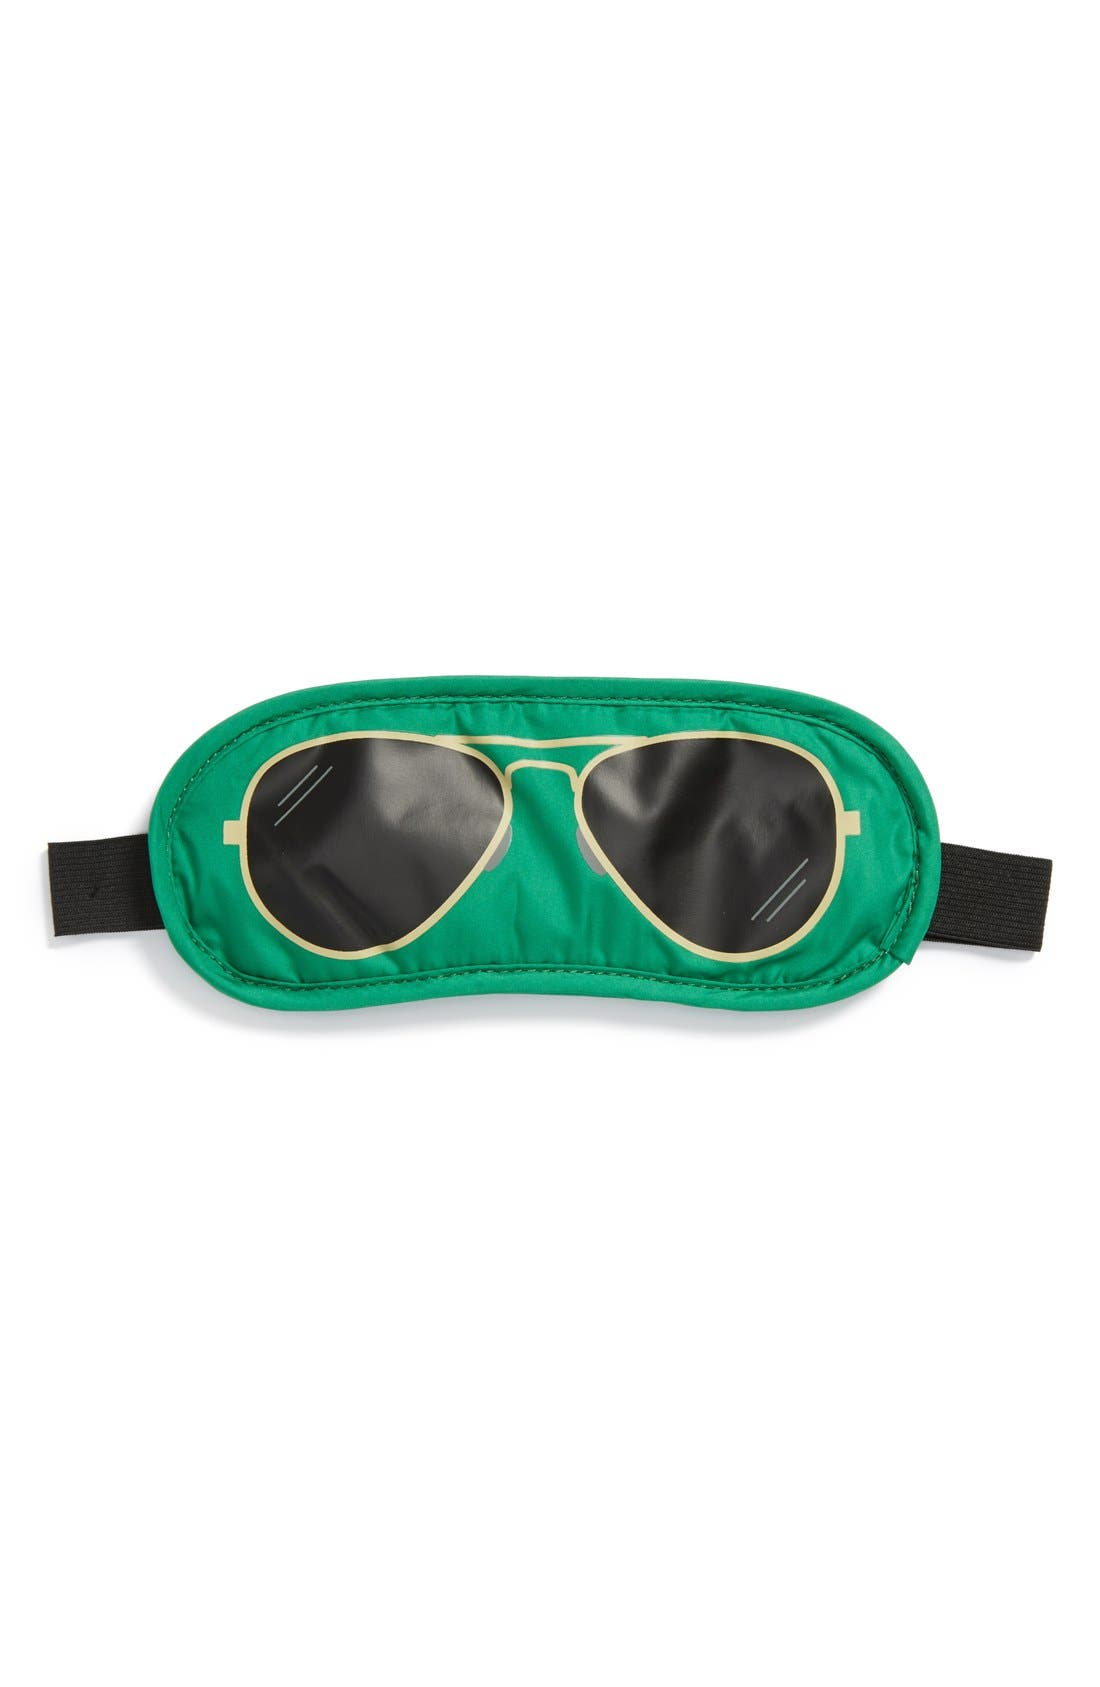 'Aviators' Sleep Mask,                             Main thumbnail 1, color,                             300